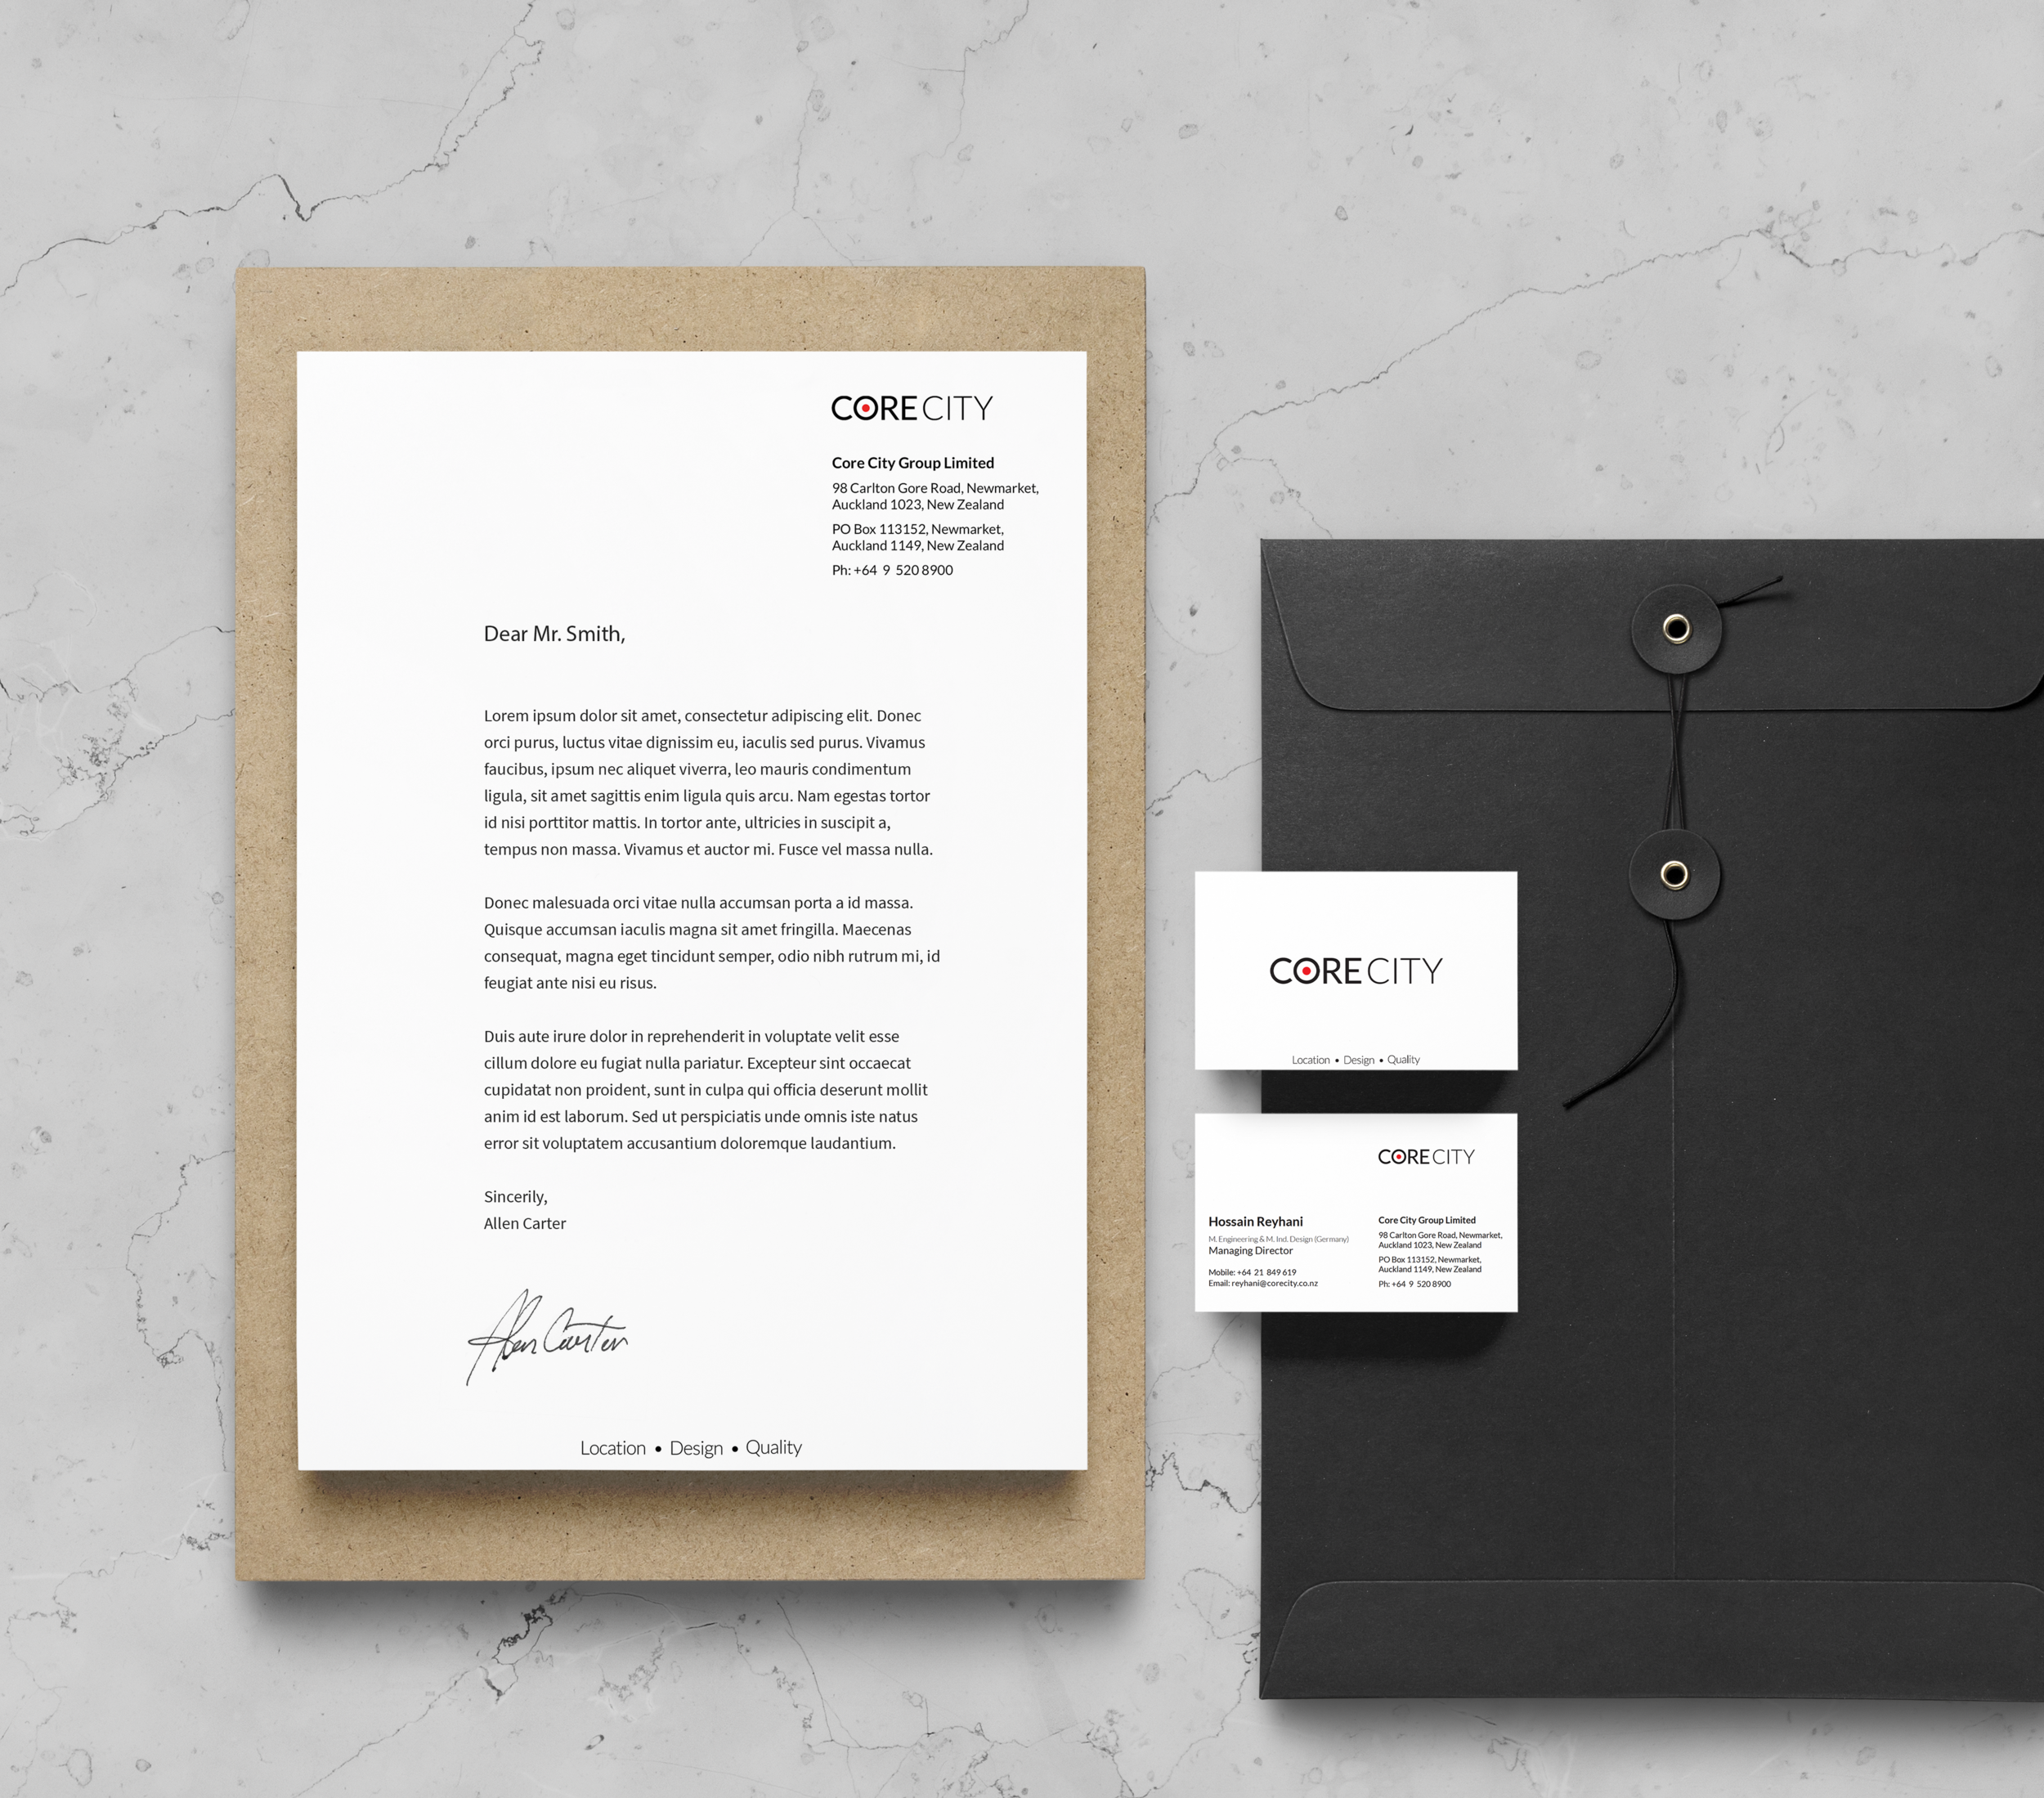 Neatly arranged brand letter, envelope, and business cards